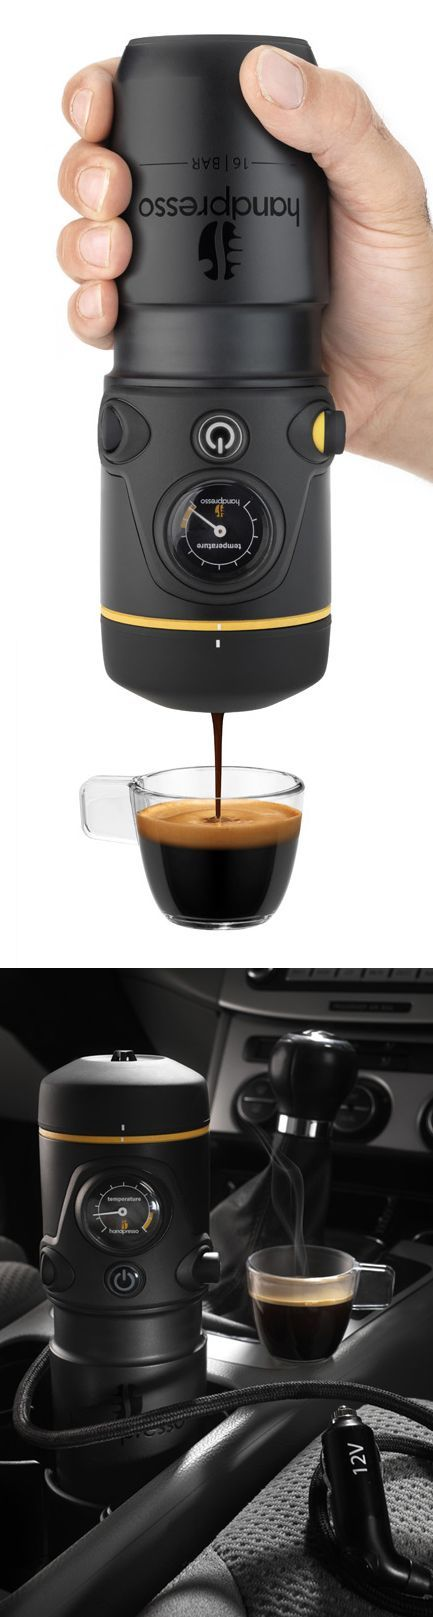 Portable Coffee Maker // simply plug the Handpresso into your car and have fresh brewed espresso on the go within minutes. Buy at www.espressooutlet.net: